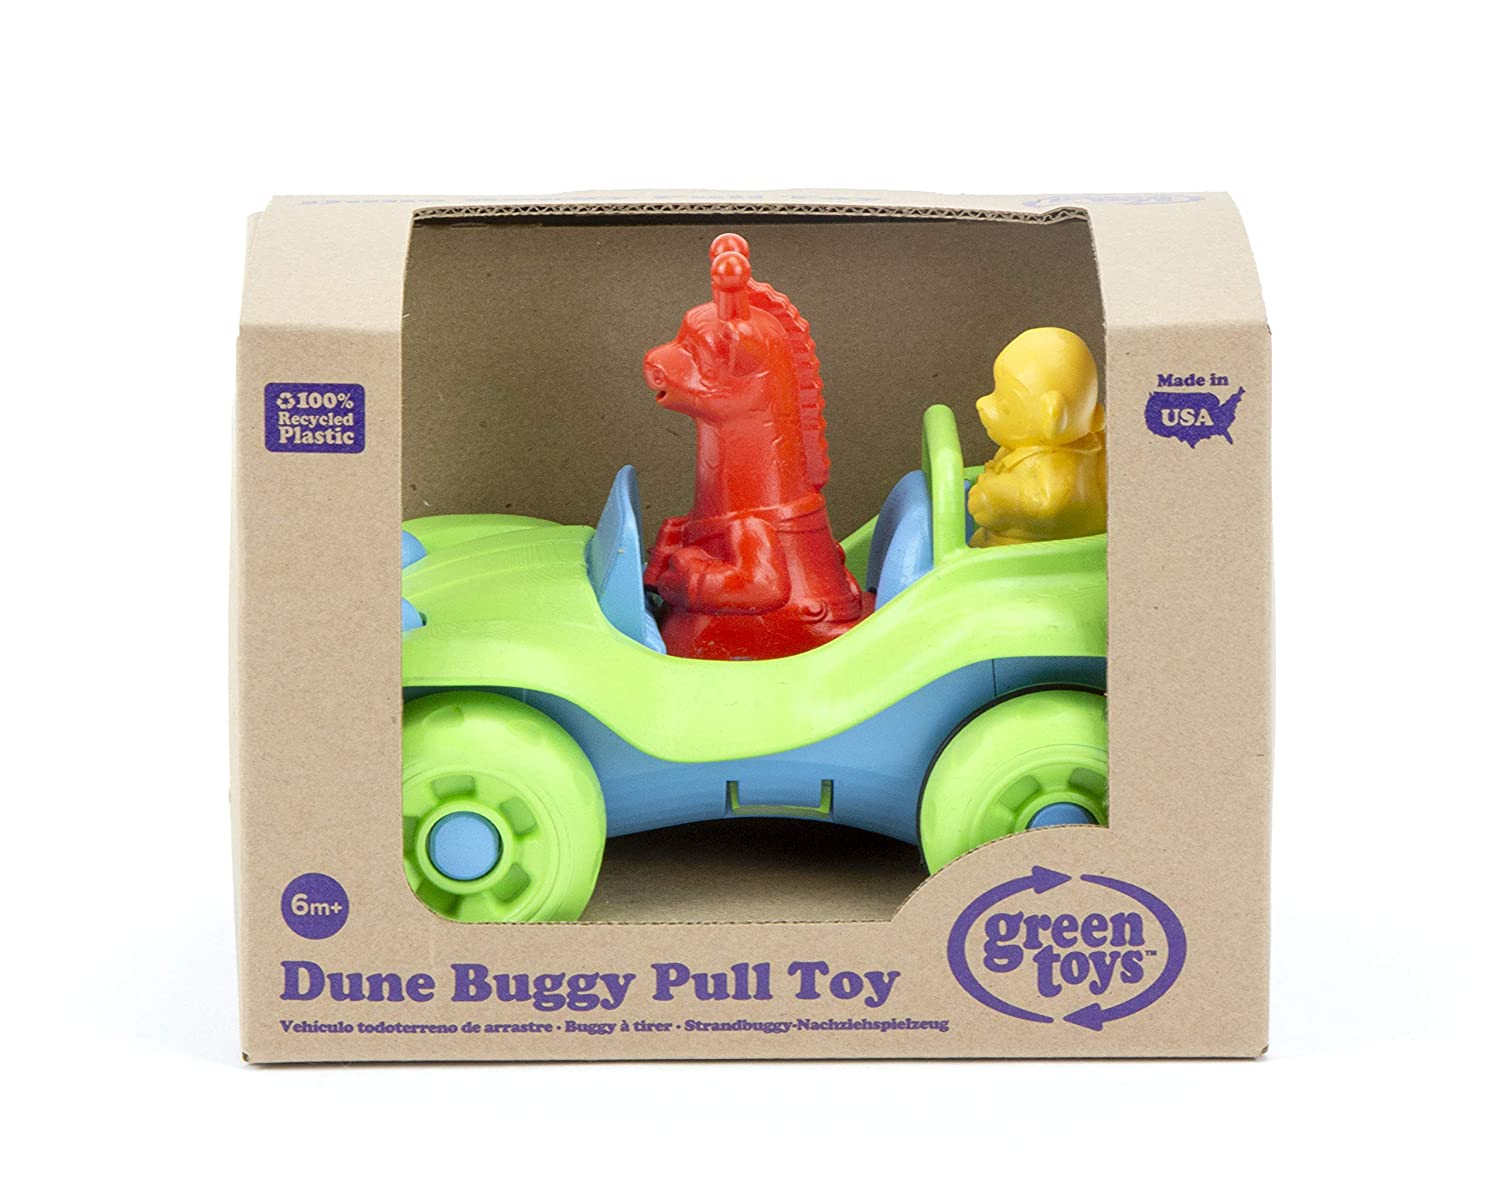 PTDB-1308 Green Toys Dune Buggy Pull Toy Inc